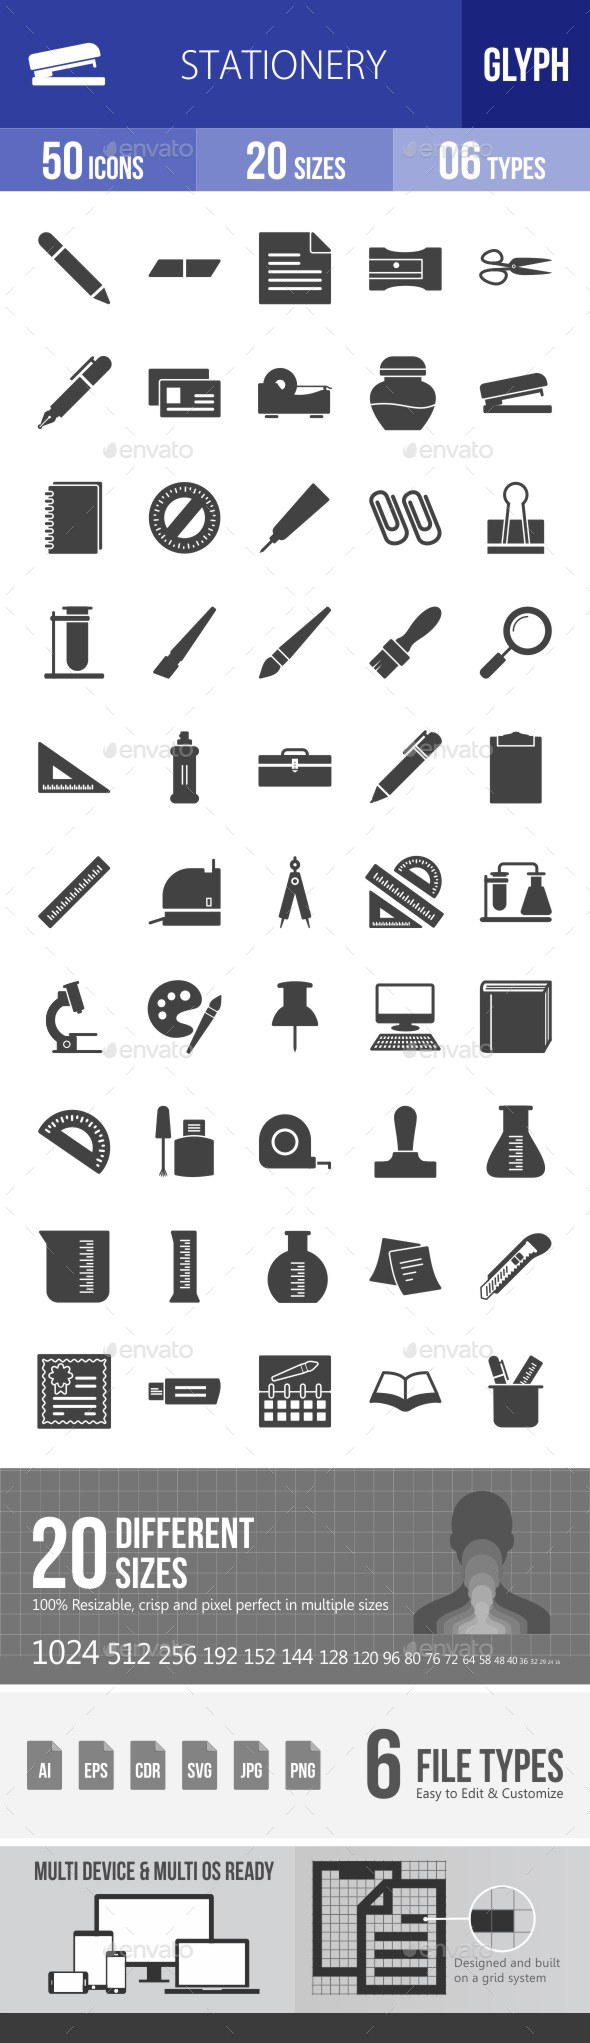 Stationery Glyph Icons - Icons